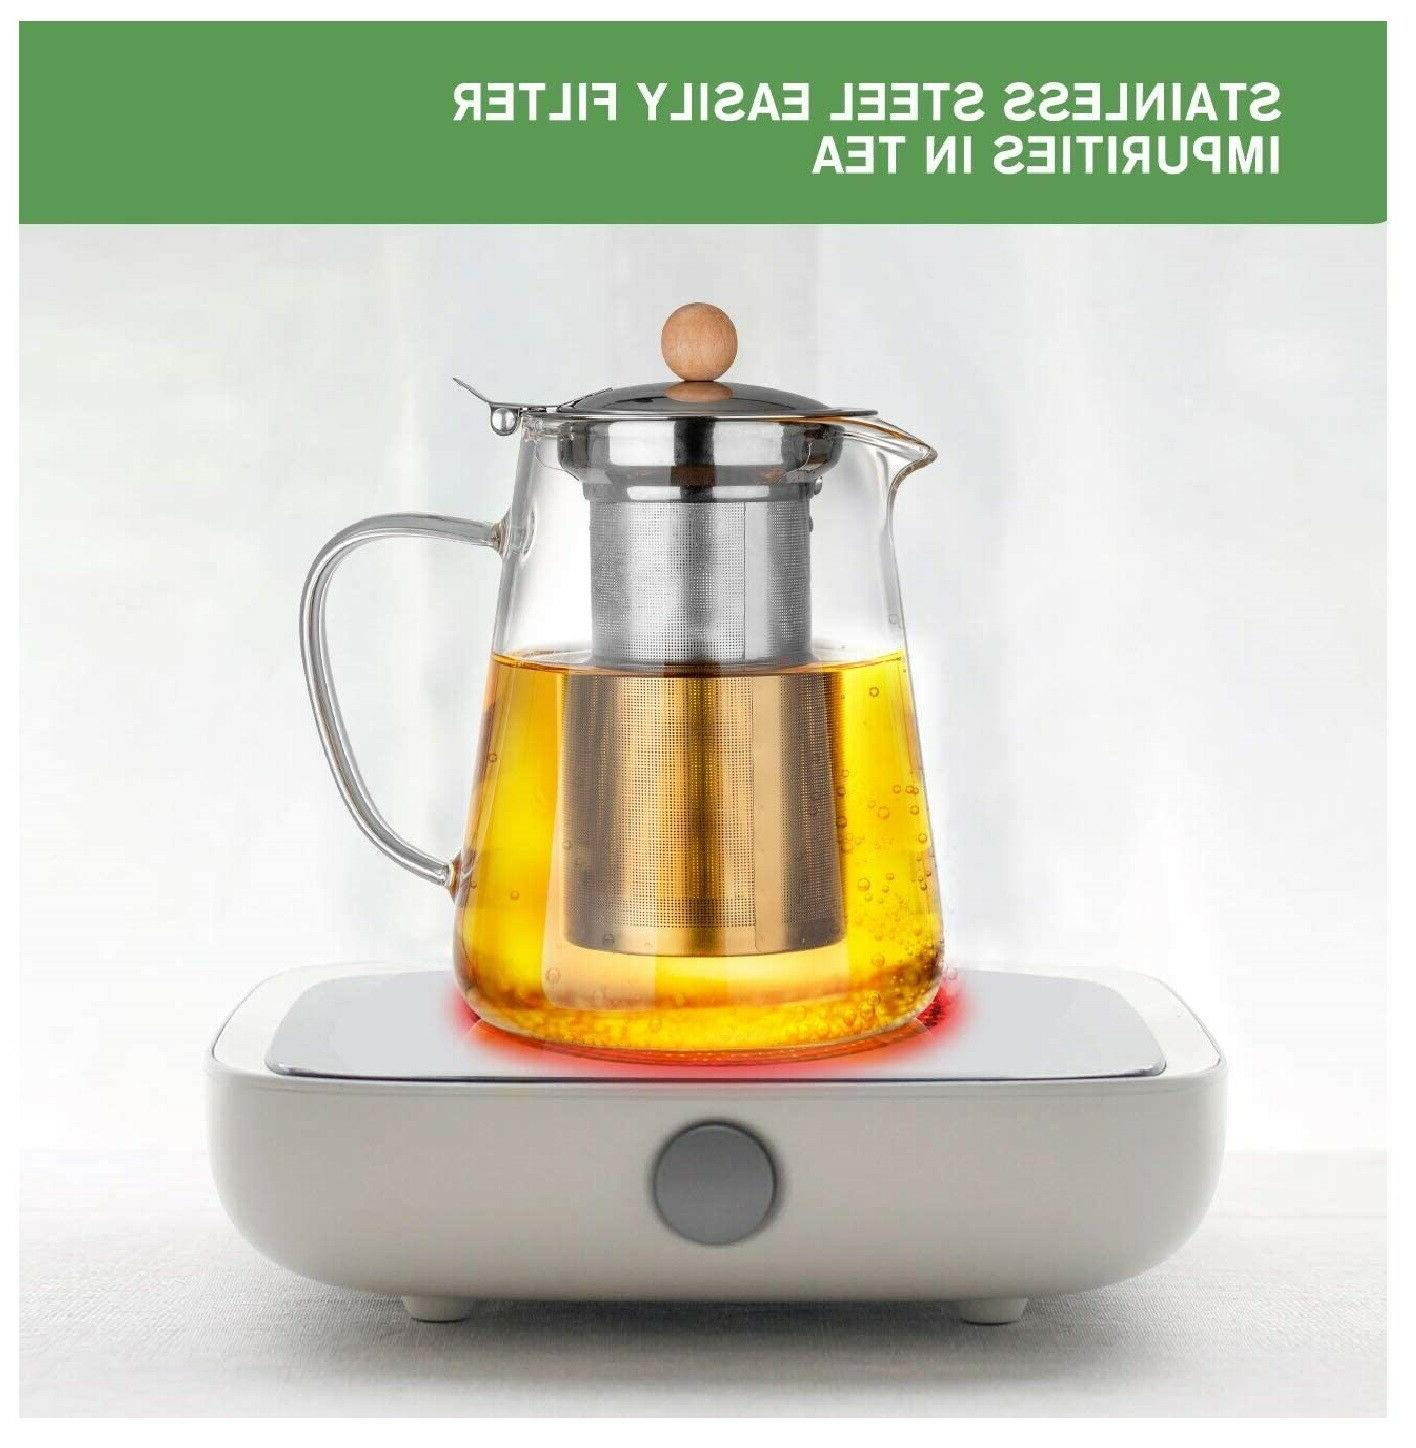 950ml/32oz Teapot Infuser kettle Pot